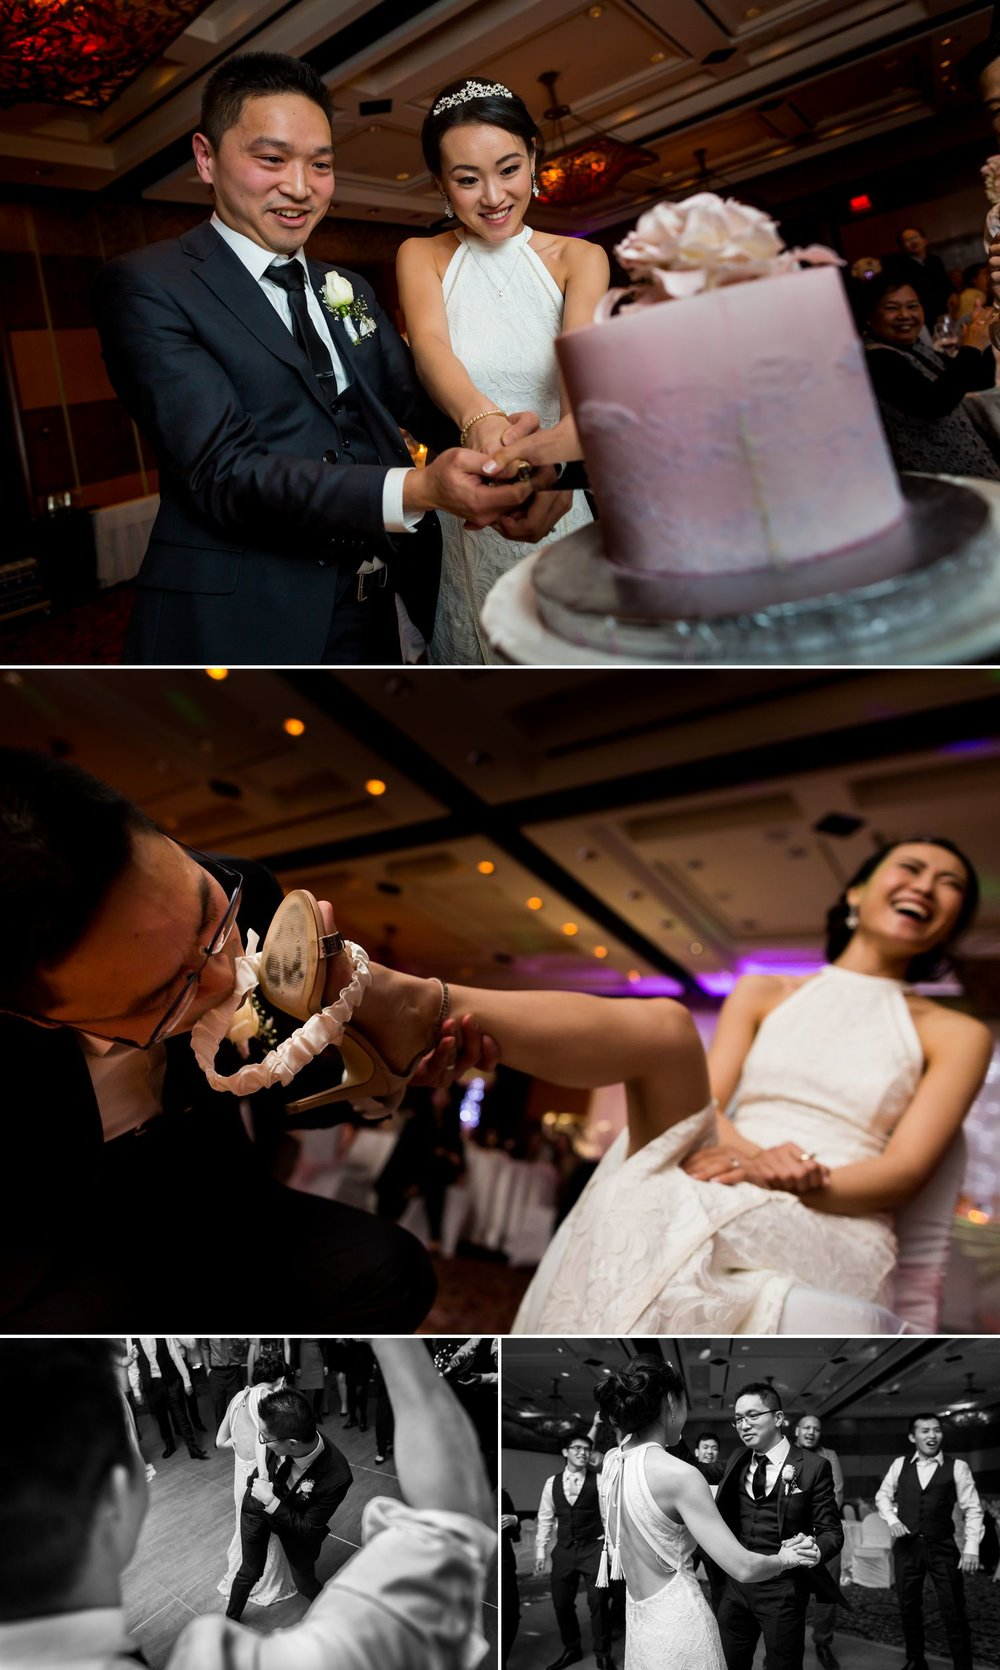 Bride and groom during their cake cutting, garter toss, and dancing with friends at their Hilton Casino Lac Leamy wedding reception